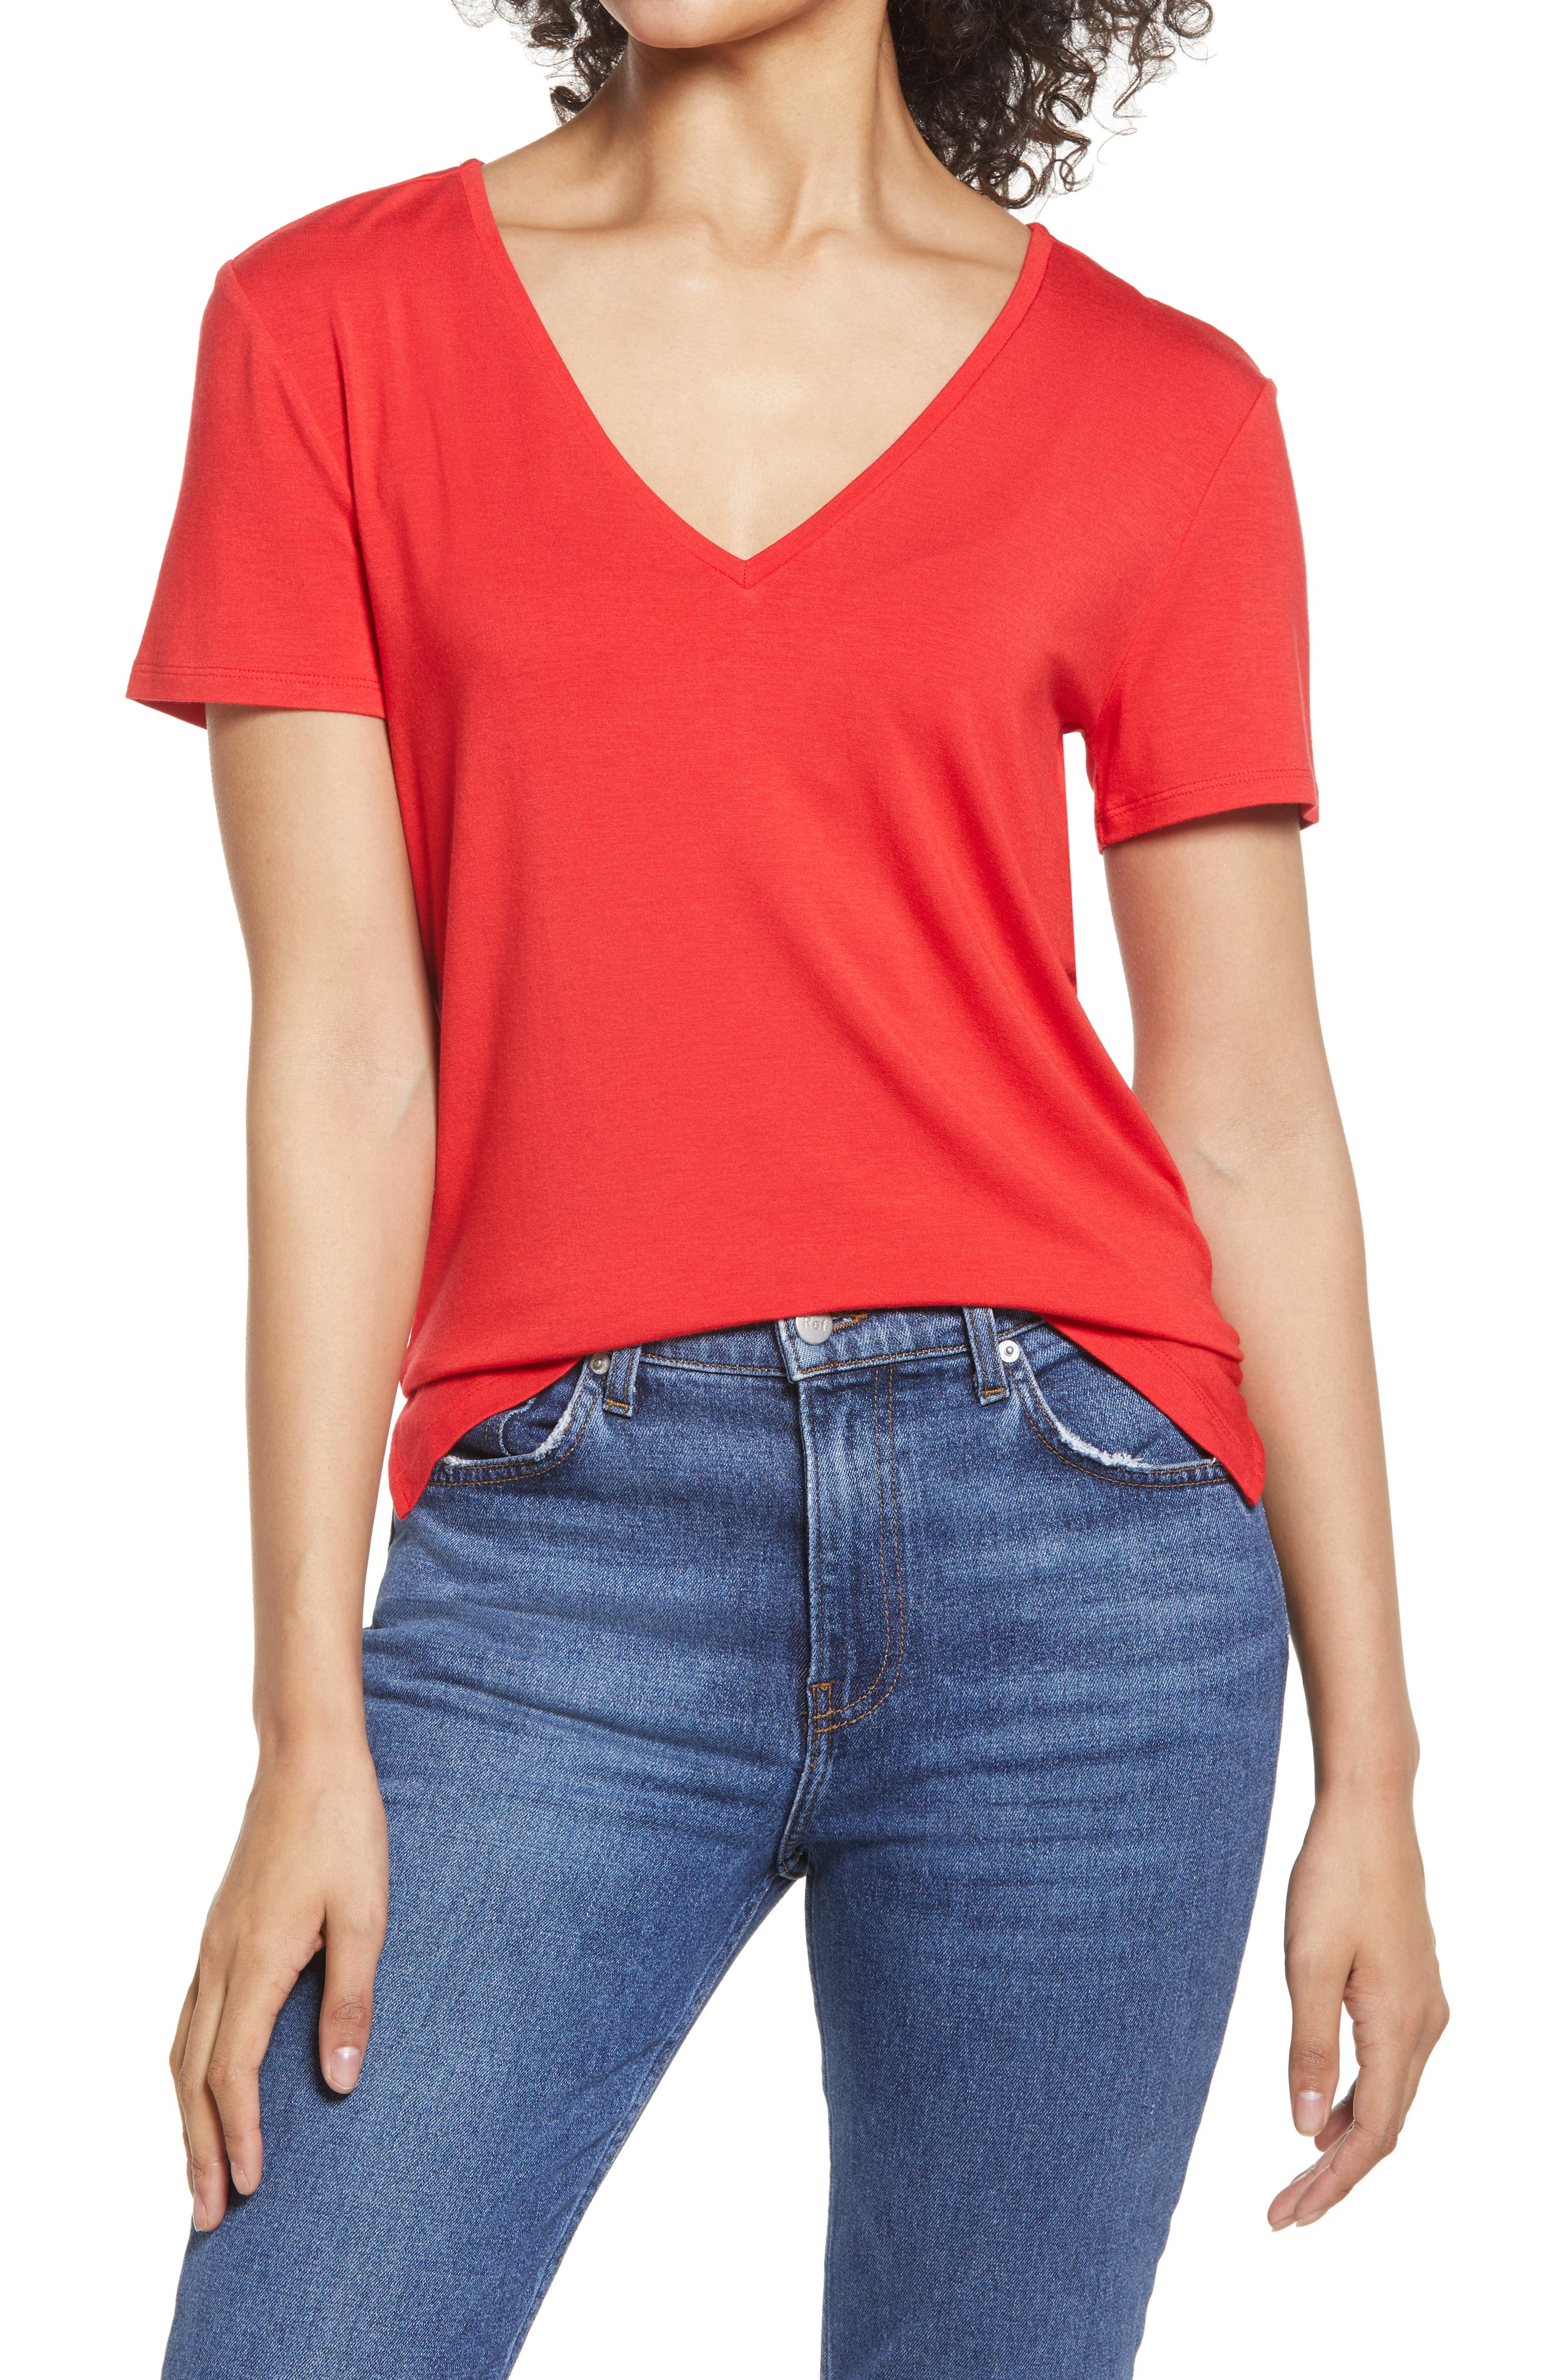 Ribbed Stretch V Neck Basic Long Baby Tee Shirt Top Women/'s Essential Wear tunic